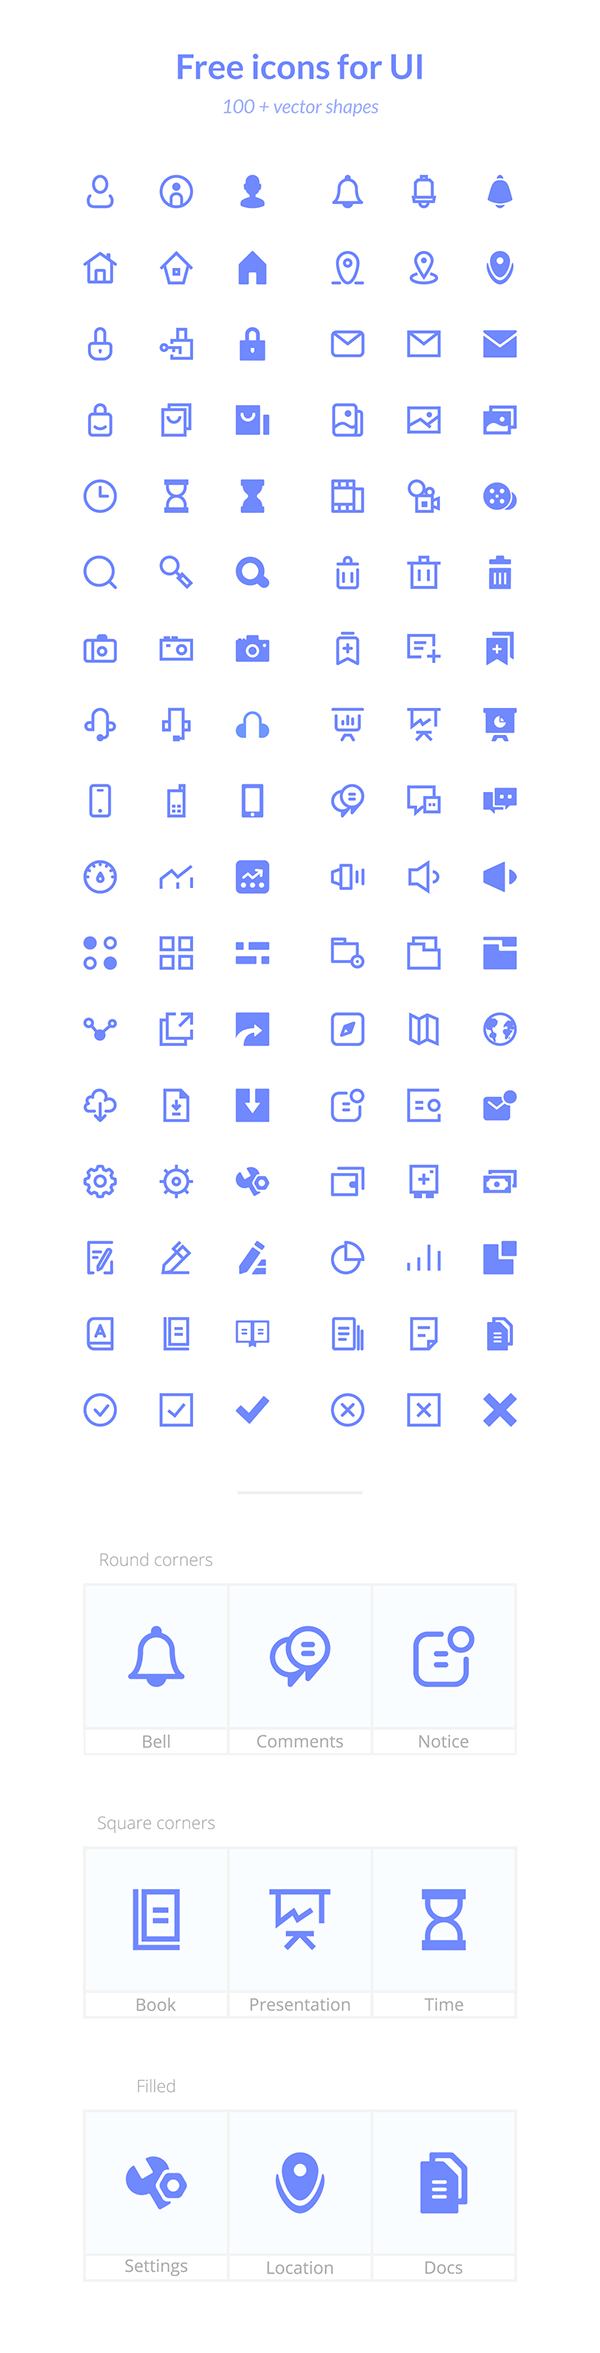 Basic Collection Of Free Icons For UI